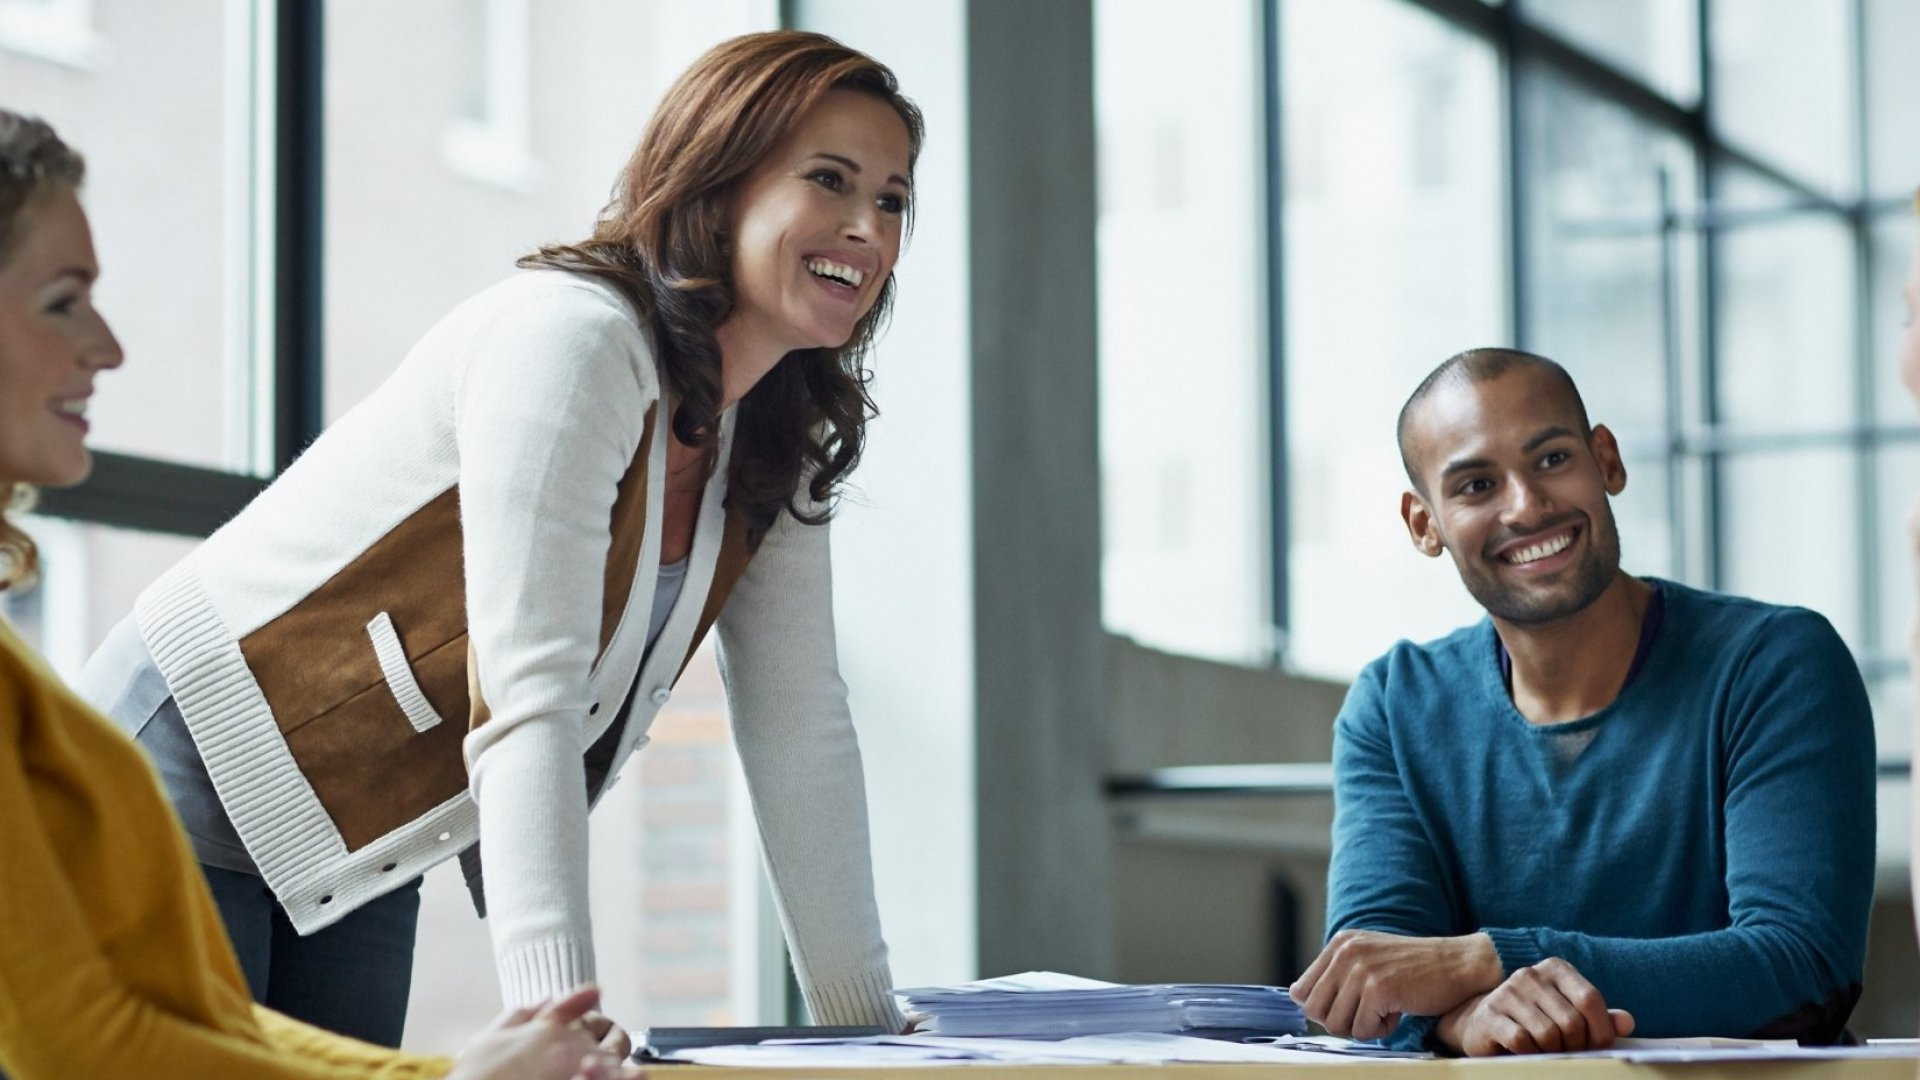 6 Great Ways to Make Small Talk Less of a Chore